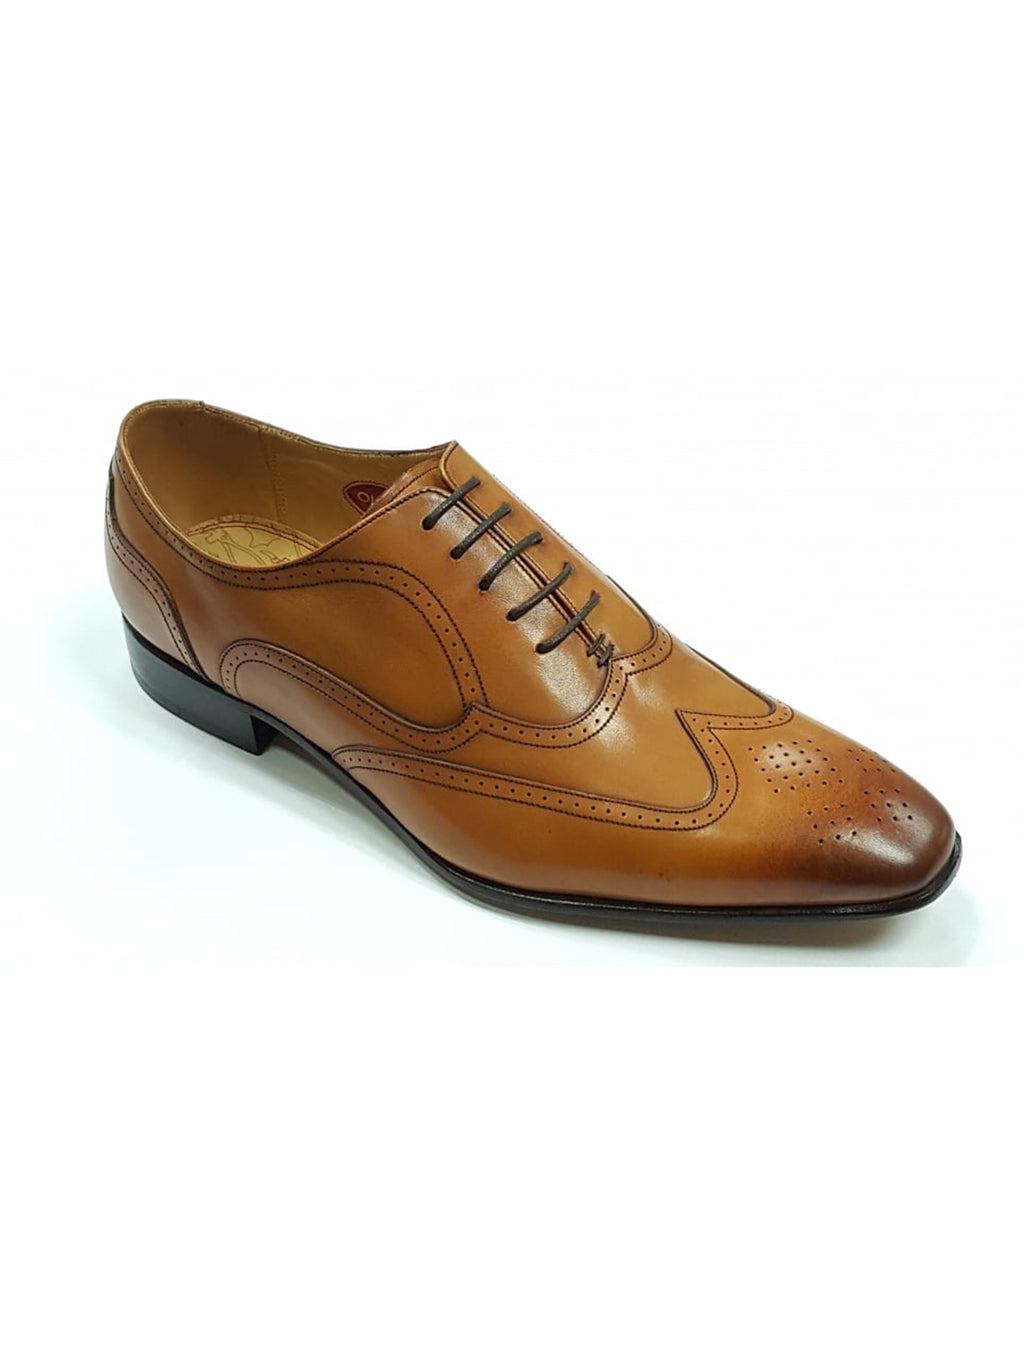 barker shoes sale camden cedar calf